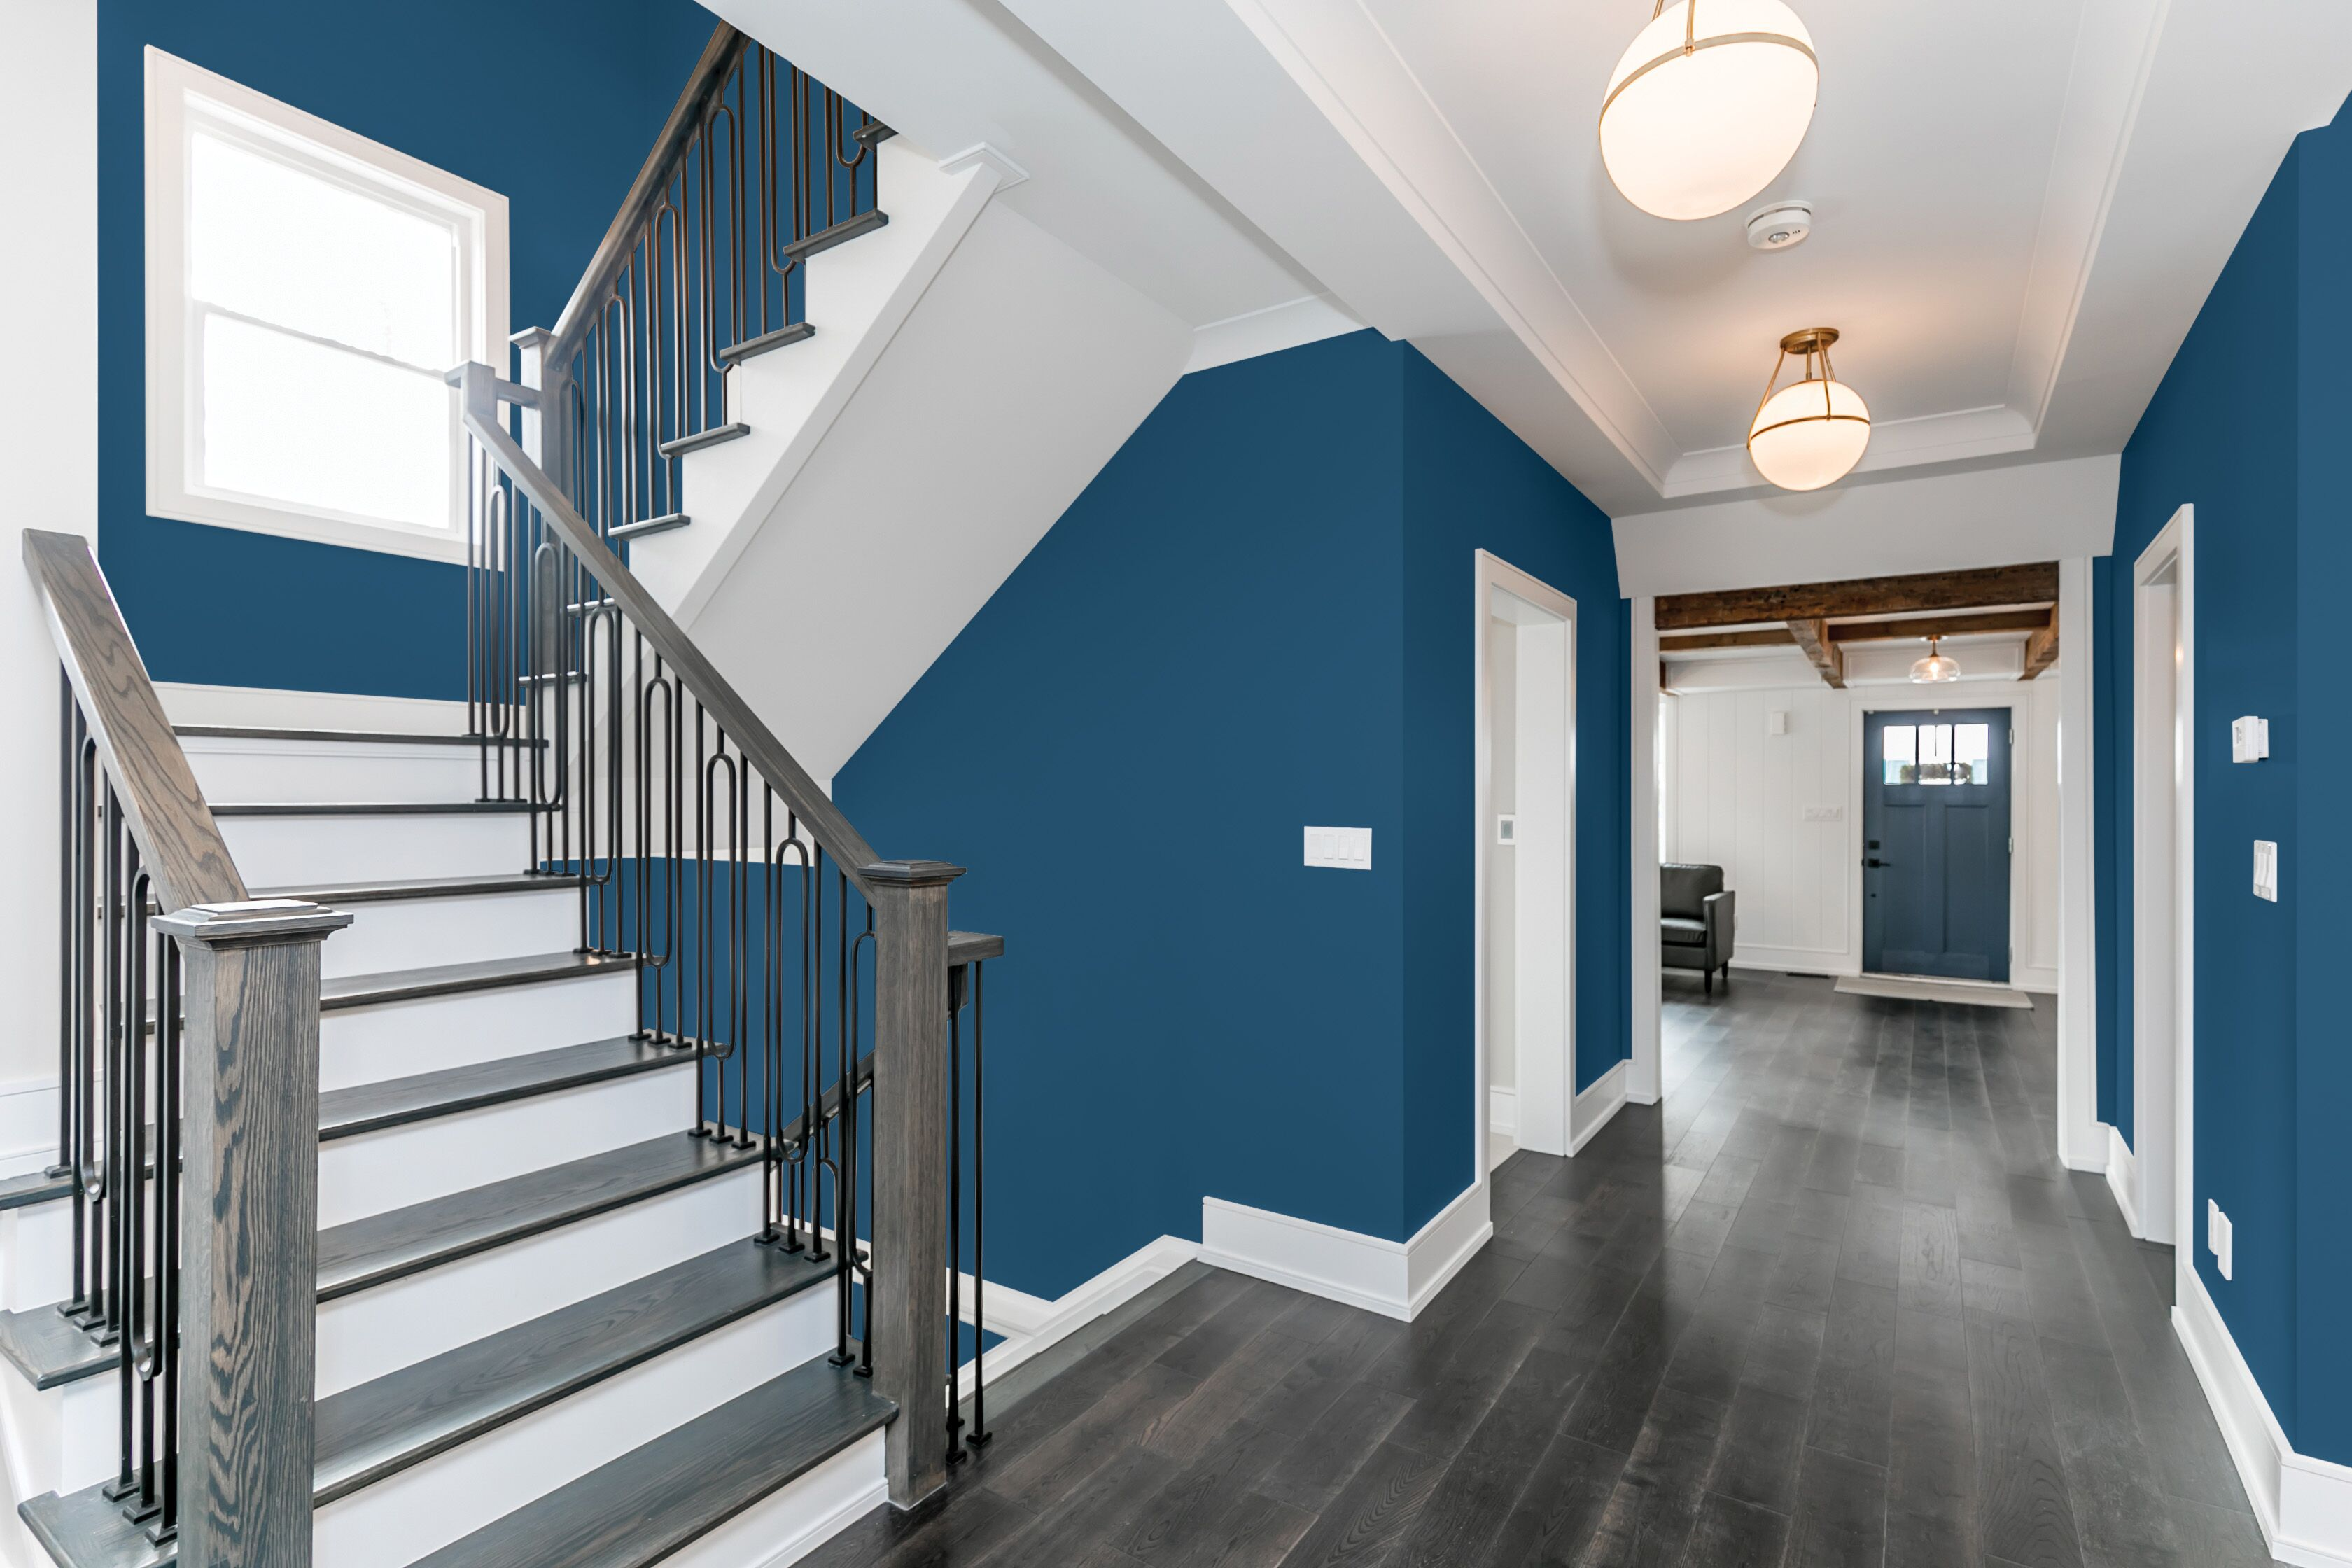 Chinese Porcelain Is Ppg Paints 2020 Color Of The Year